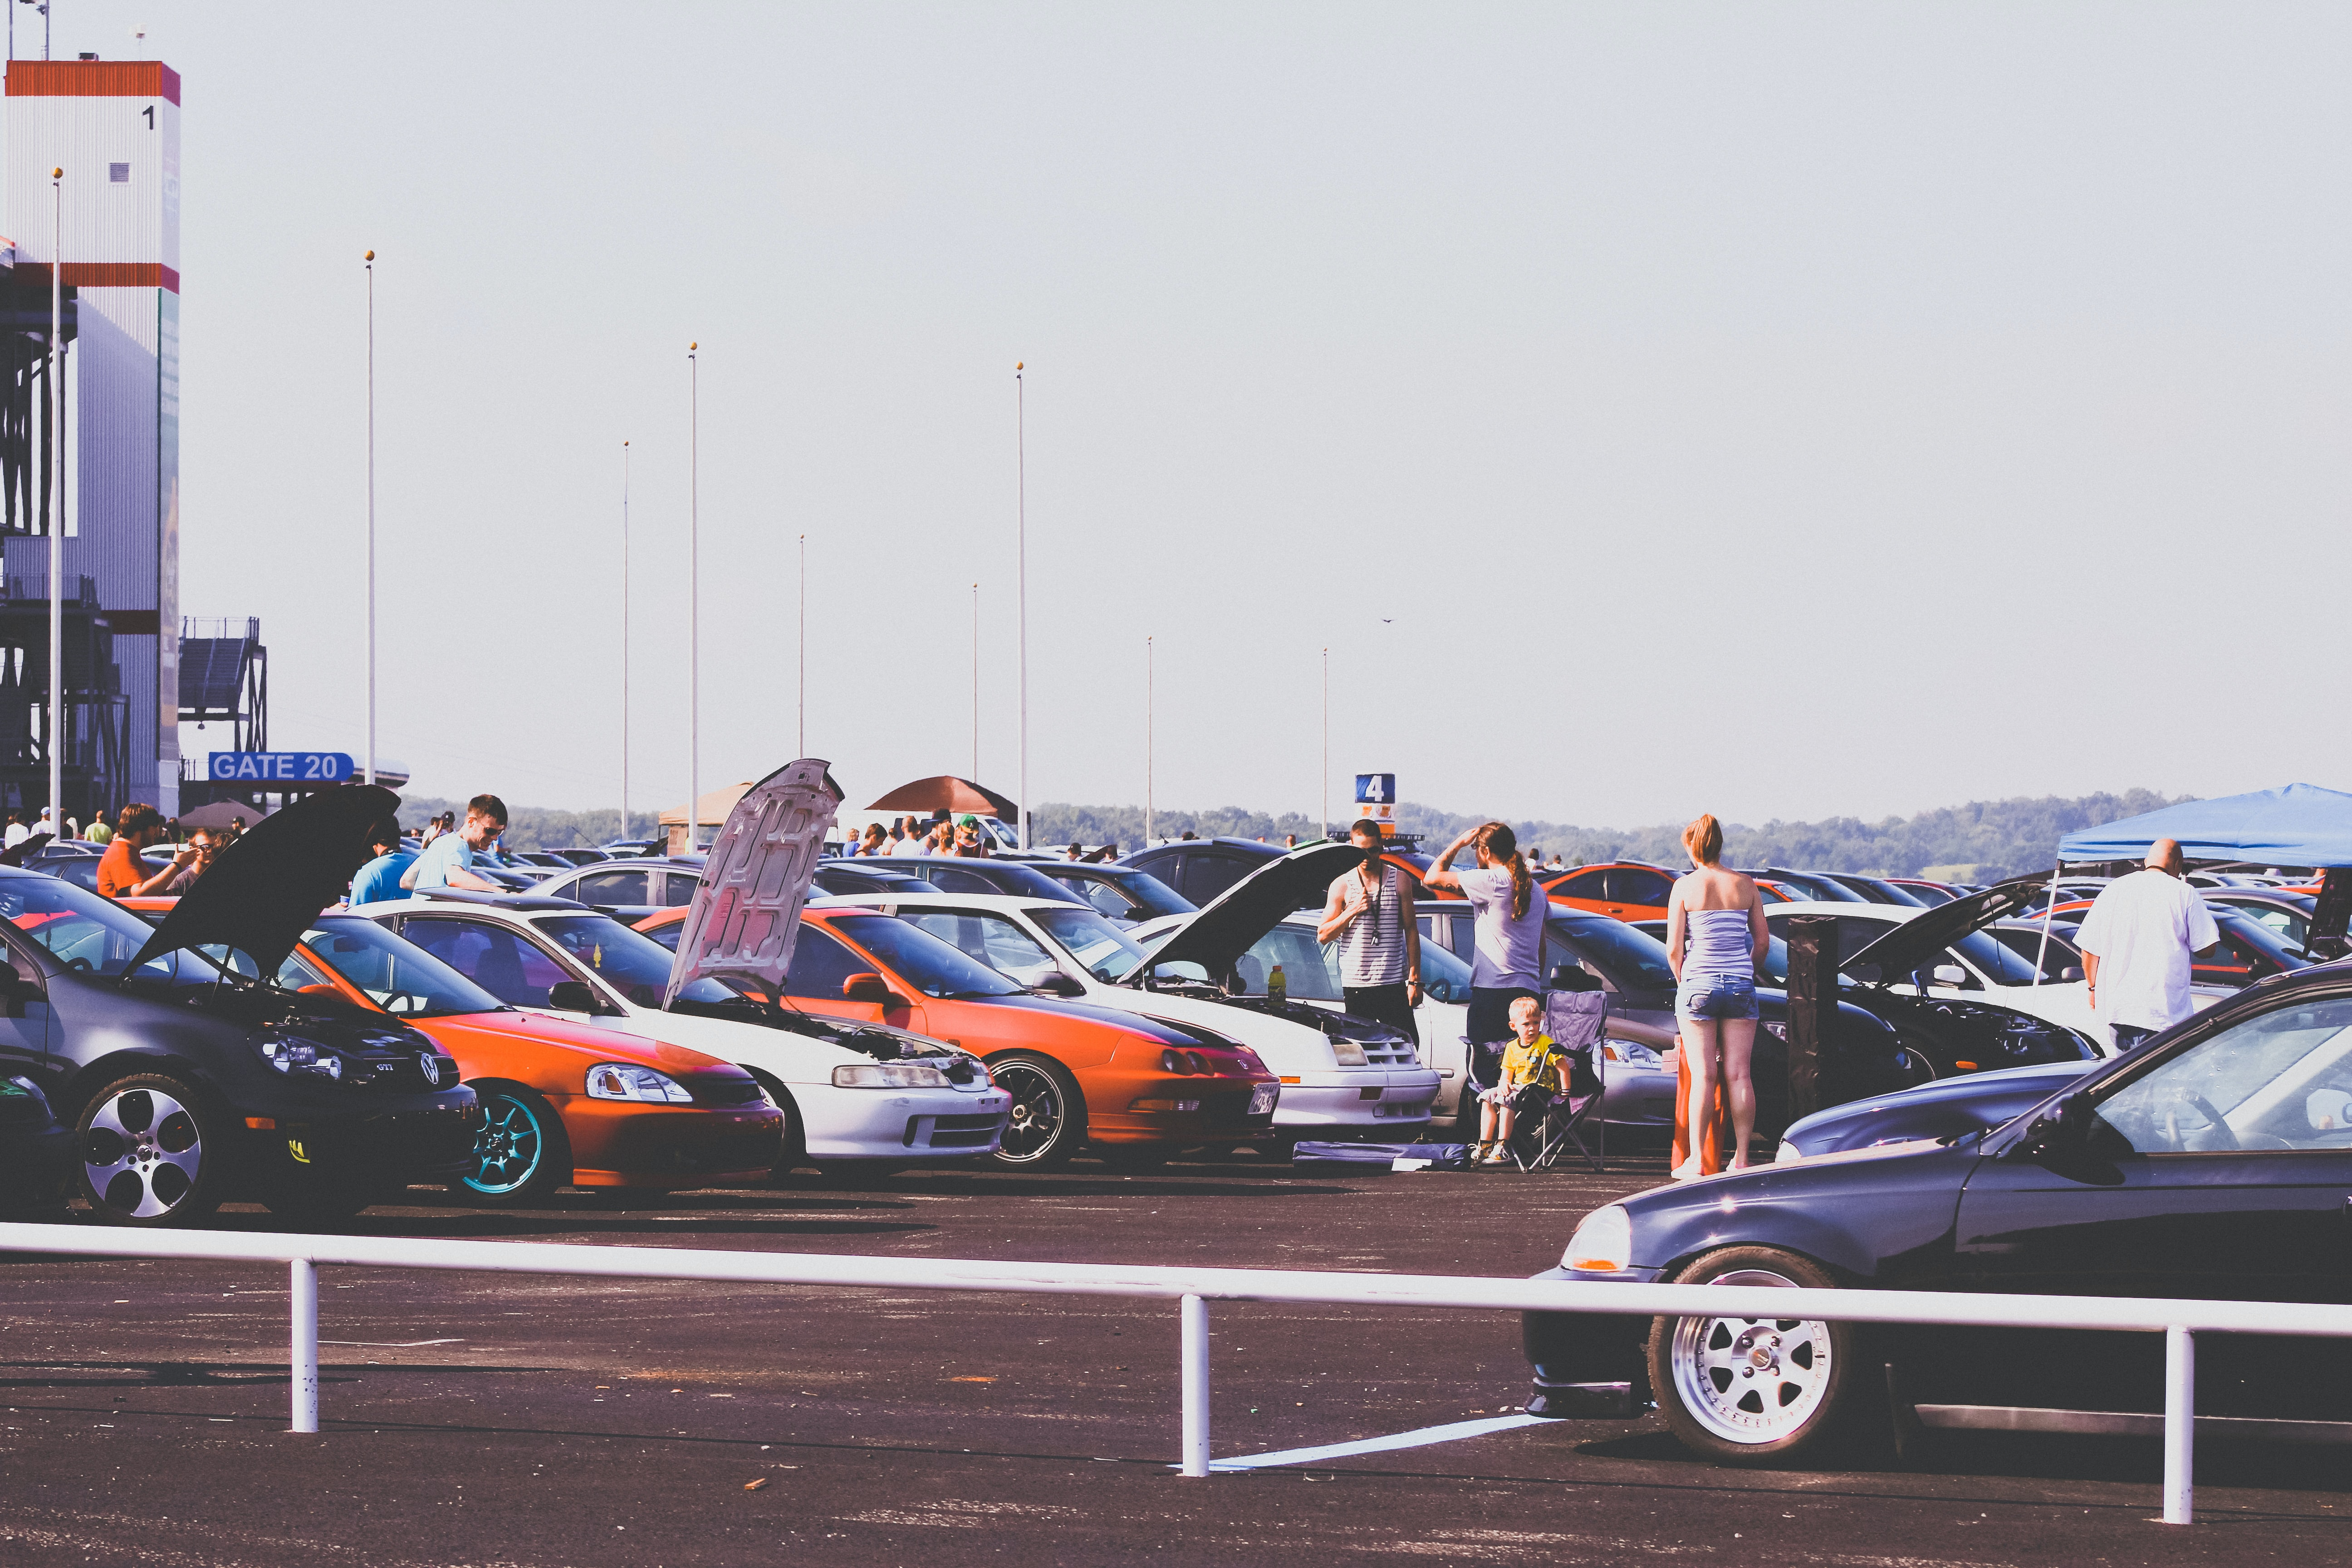 assorted cars on parking area